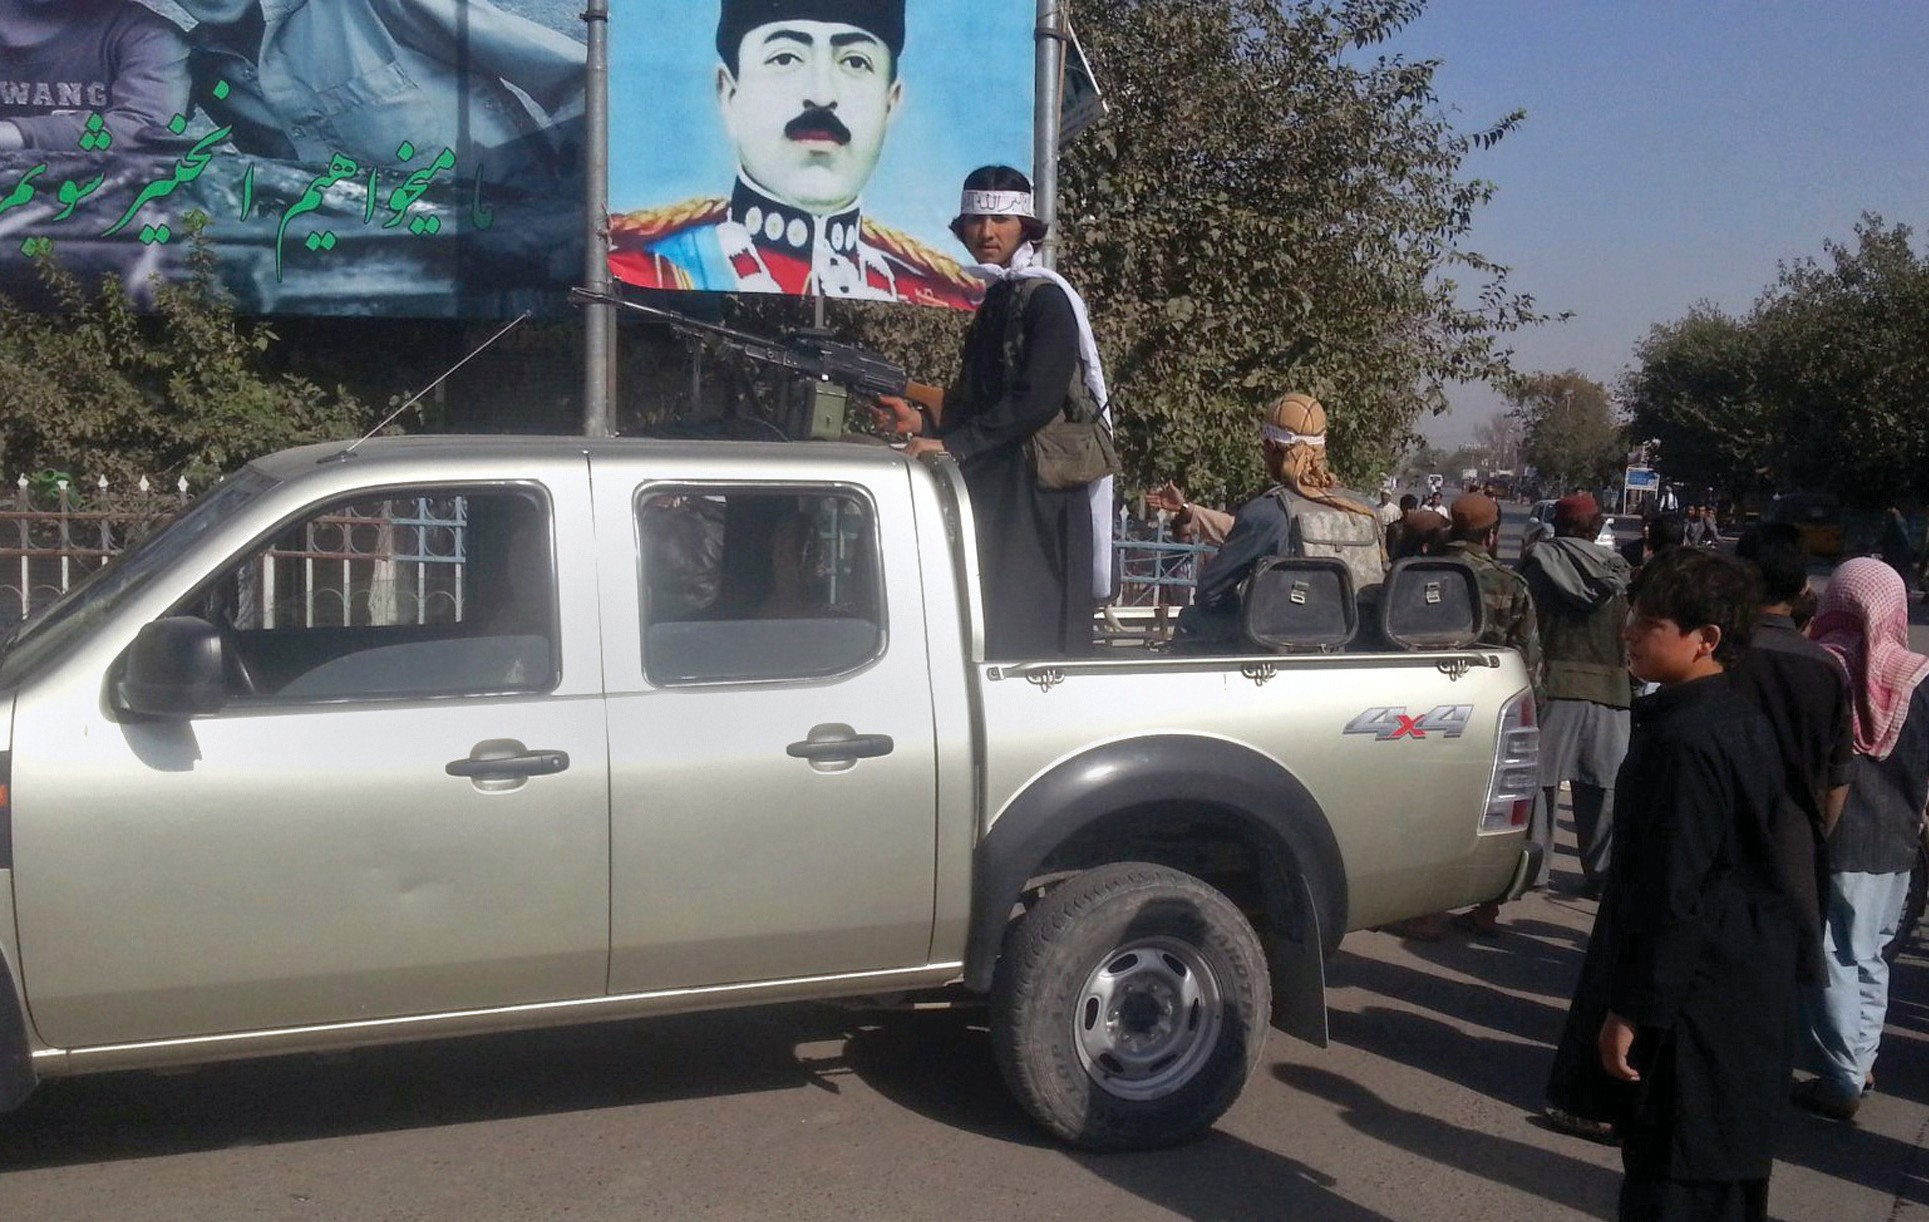 In this Sept. 29 photo, a Taliban fighter stands guard on a vehicle in Kunduz, north of Kabul, Afghanistan.